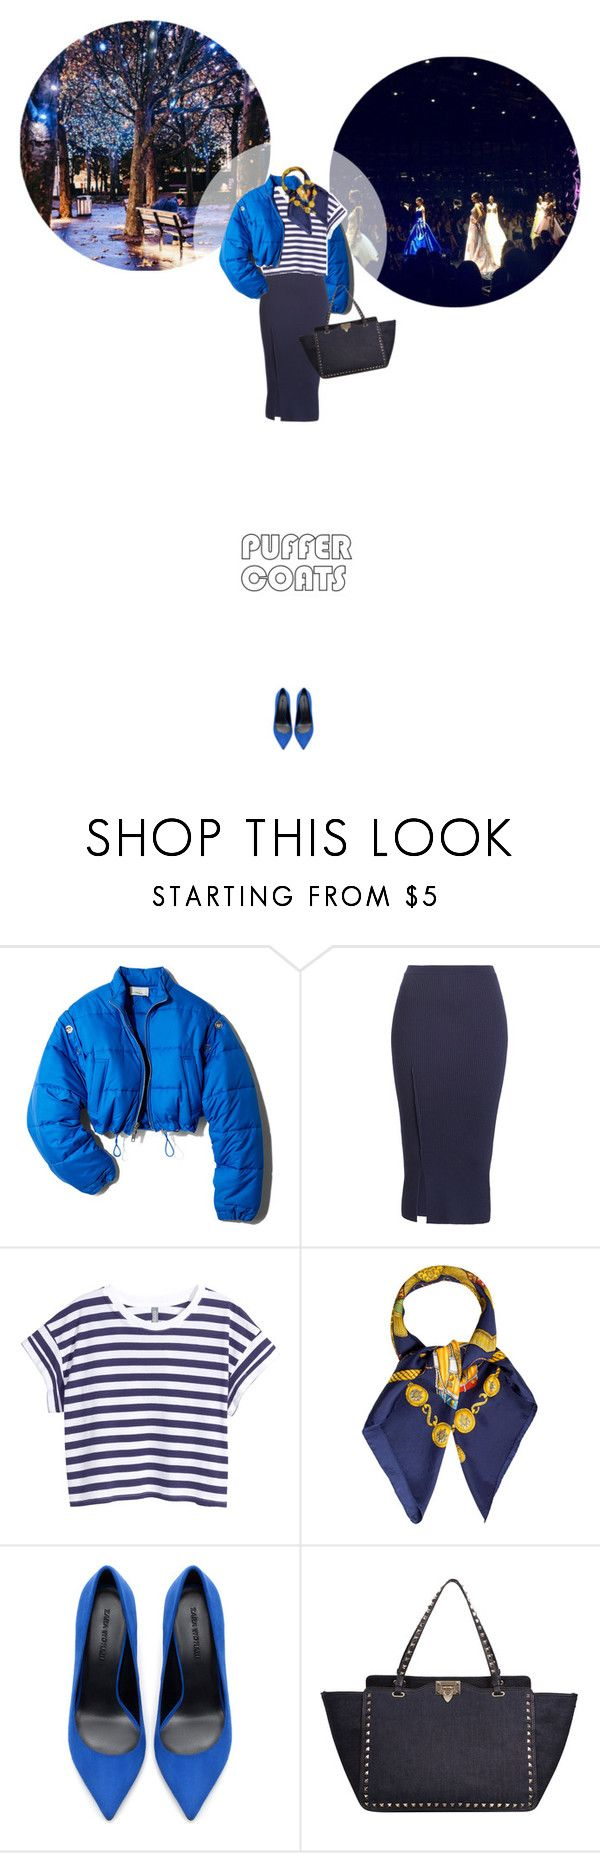 // 1335. Stay Warm: Puffer Coats. by lilymcenvy on Polyvore featuring H&M, 3.1 Phillip Lim, Victoria Beckham, Zara, Valentino, Hermès and puffercoats